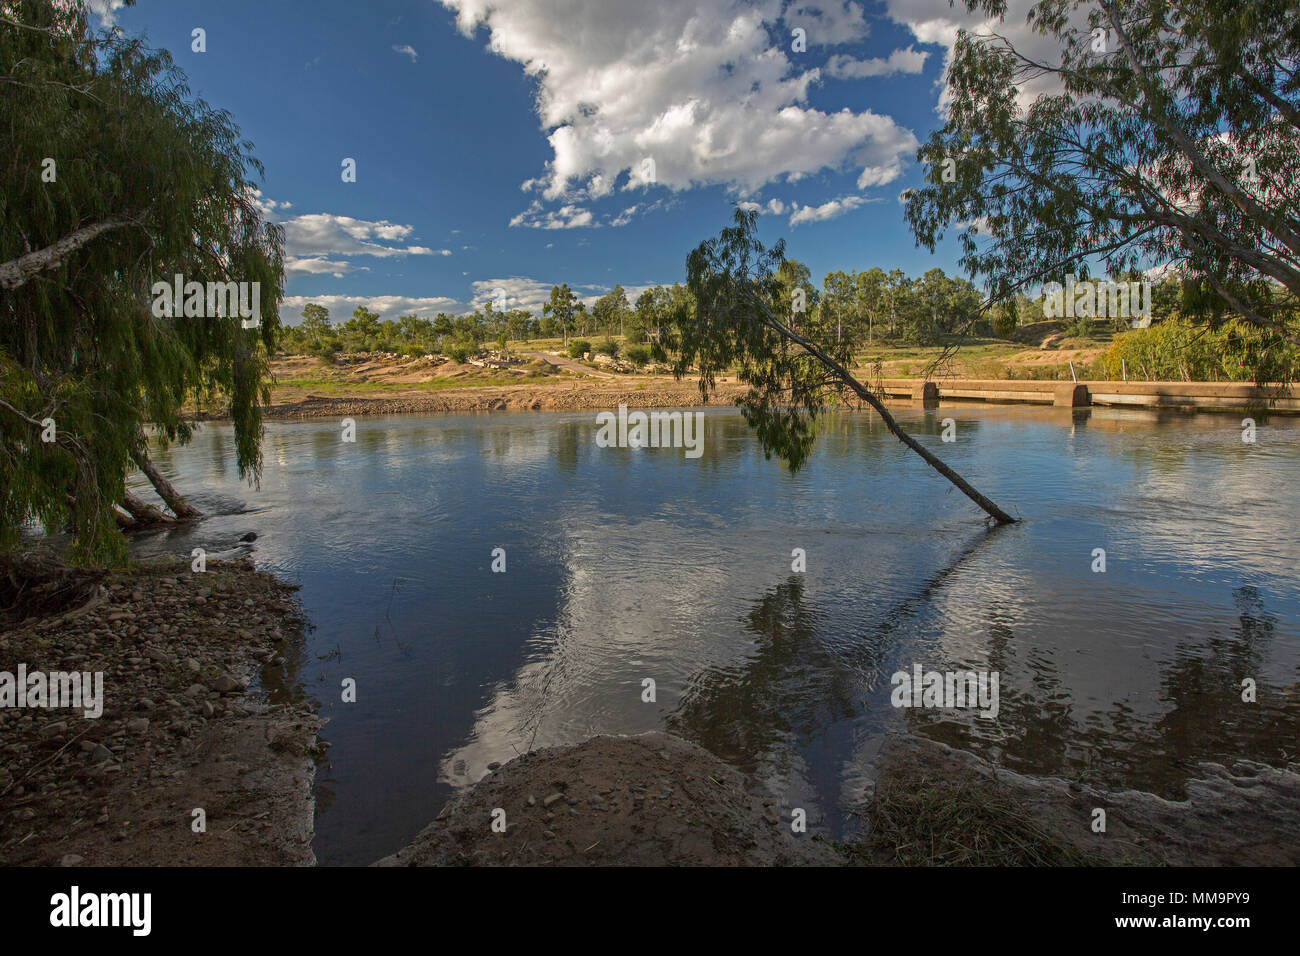 Landscape with Bowen River, with blue sky and clouds reflected in calm waters, hemmed with sandy bank and native trees in western Queensland Australia - Stock Image